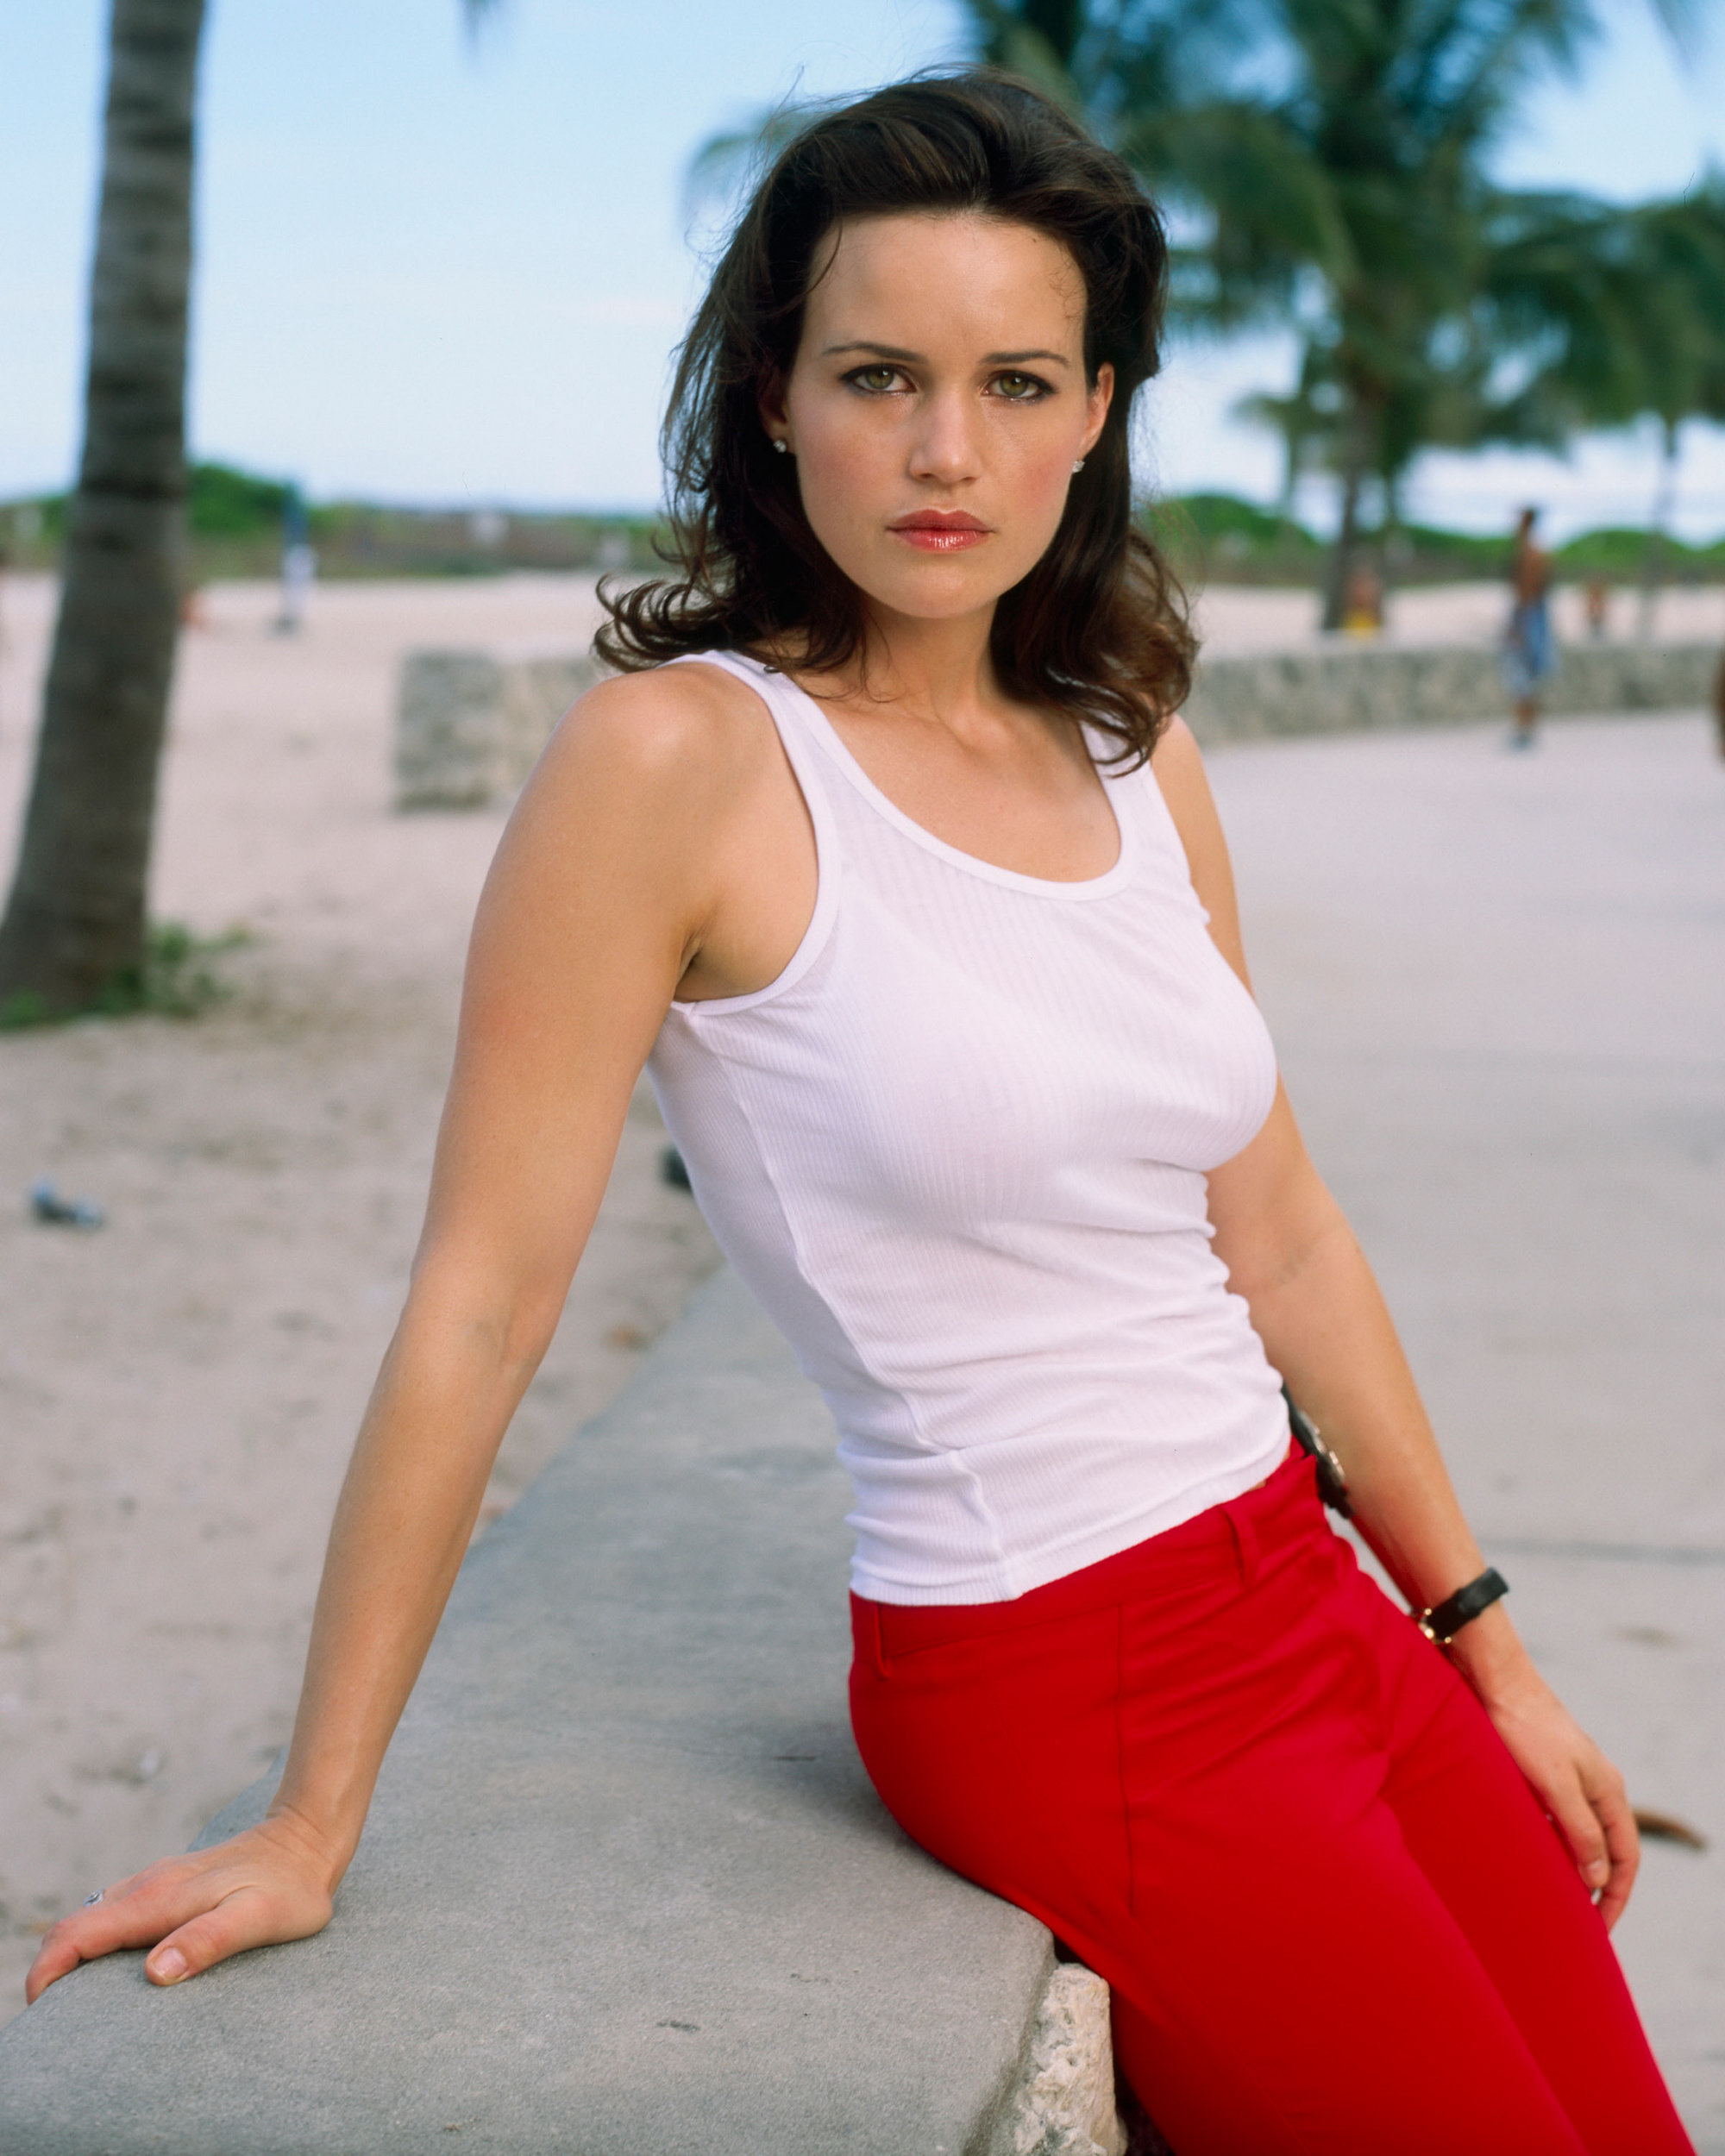 Nice Images Collection: Carla Gugino Desktop Wallpapers